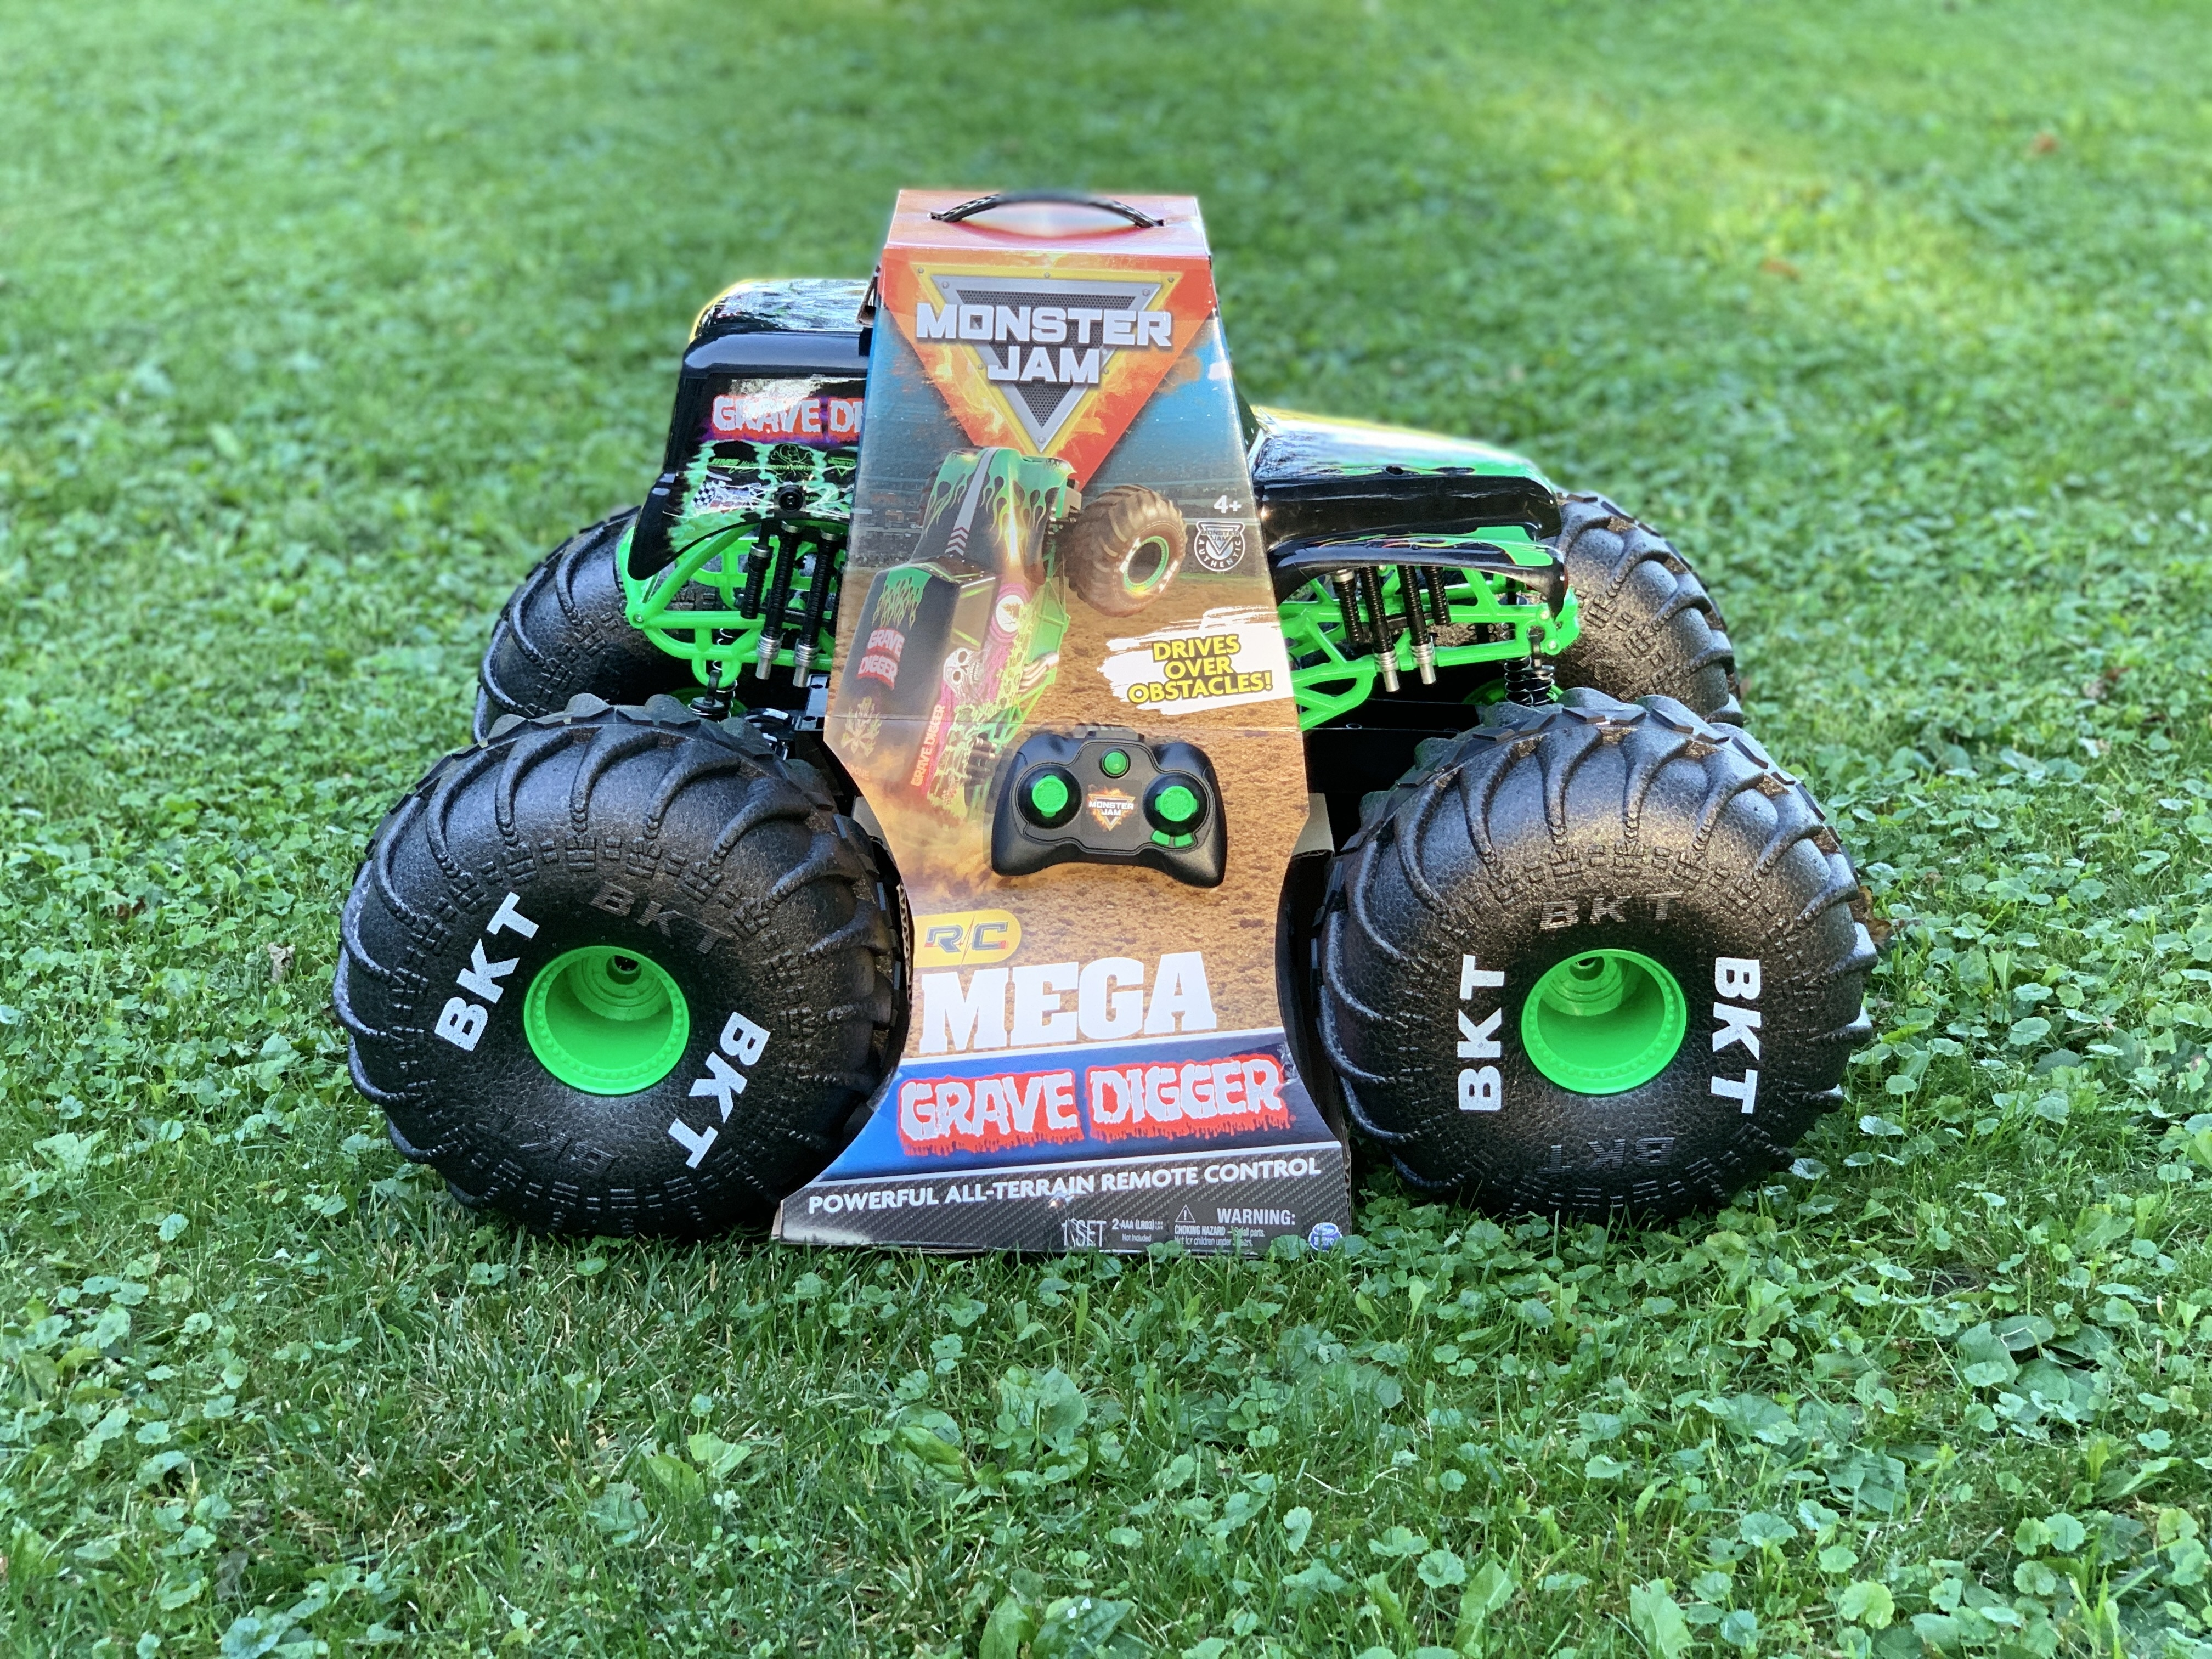 Monster Jam Mega Grave Digger Remote Control Monster Truck Reviews In Remote Control Toys Familyrated